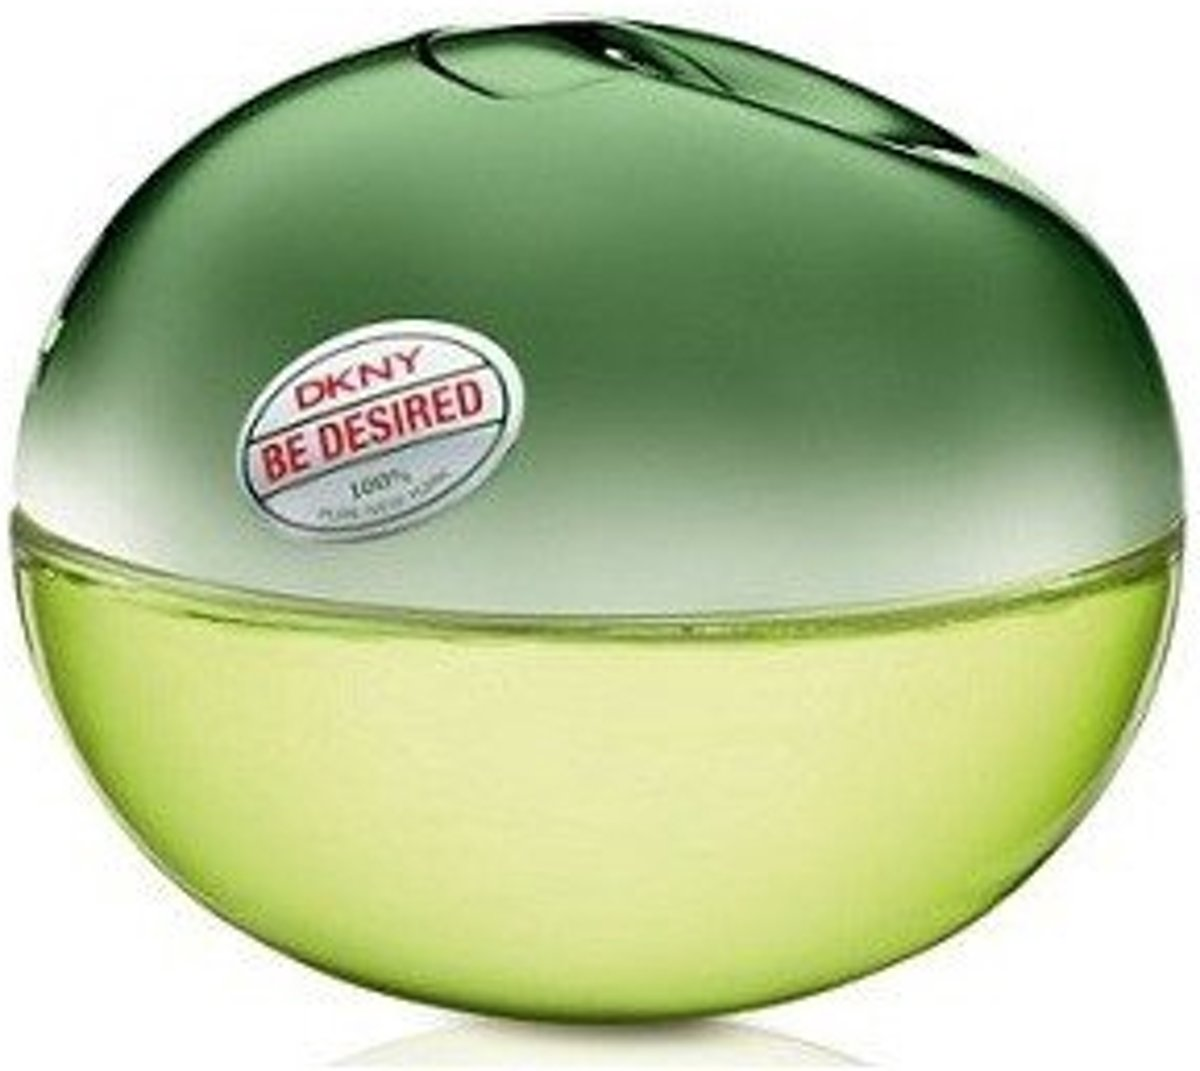 DKNY Be Desired 100 ml - Eau de parfum - for Women